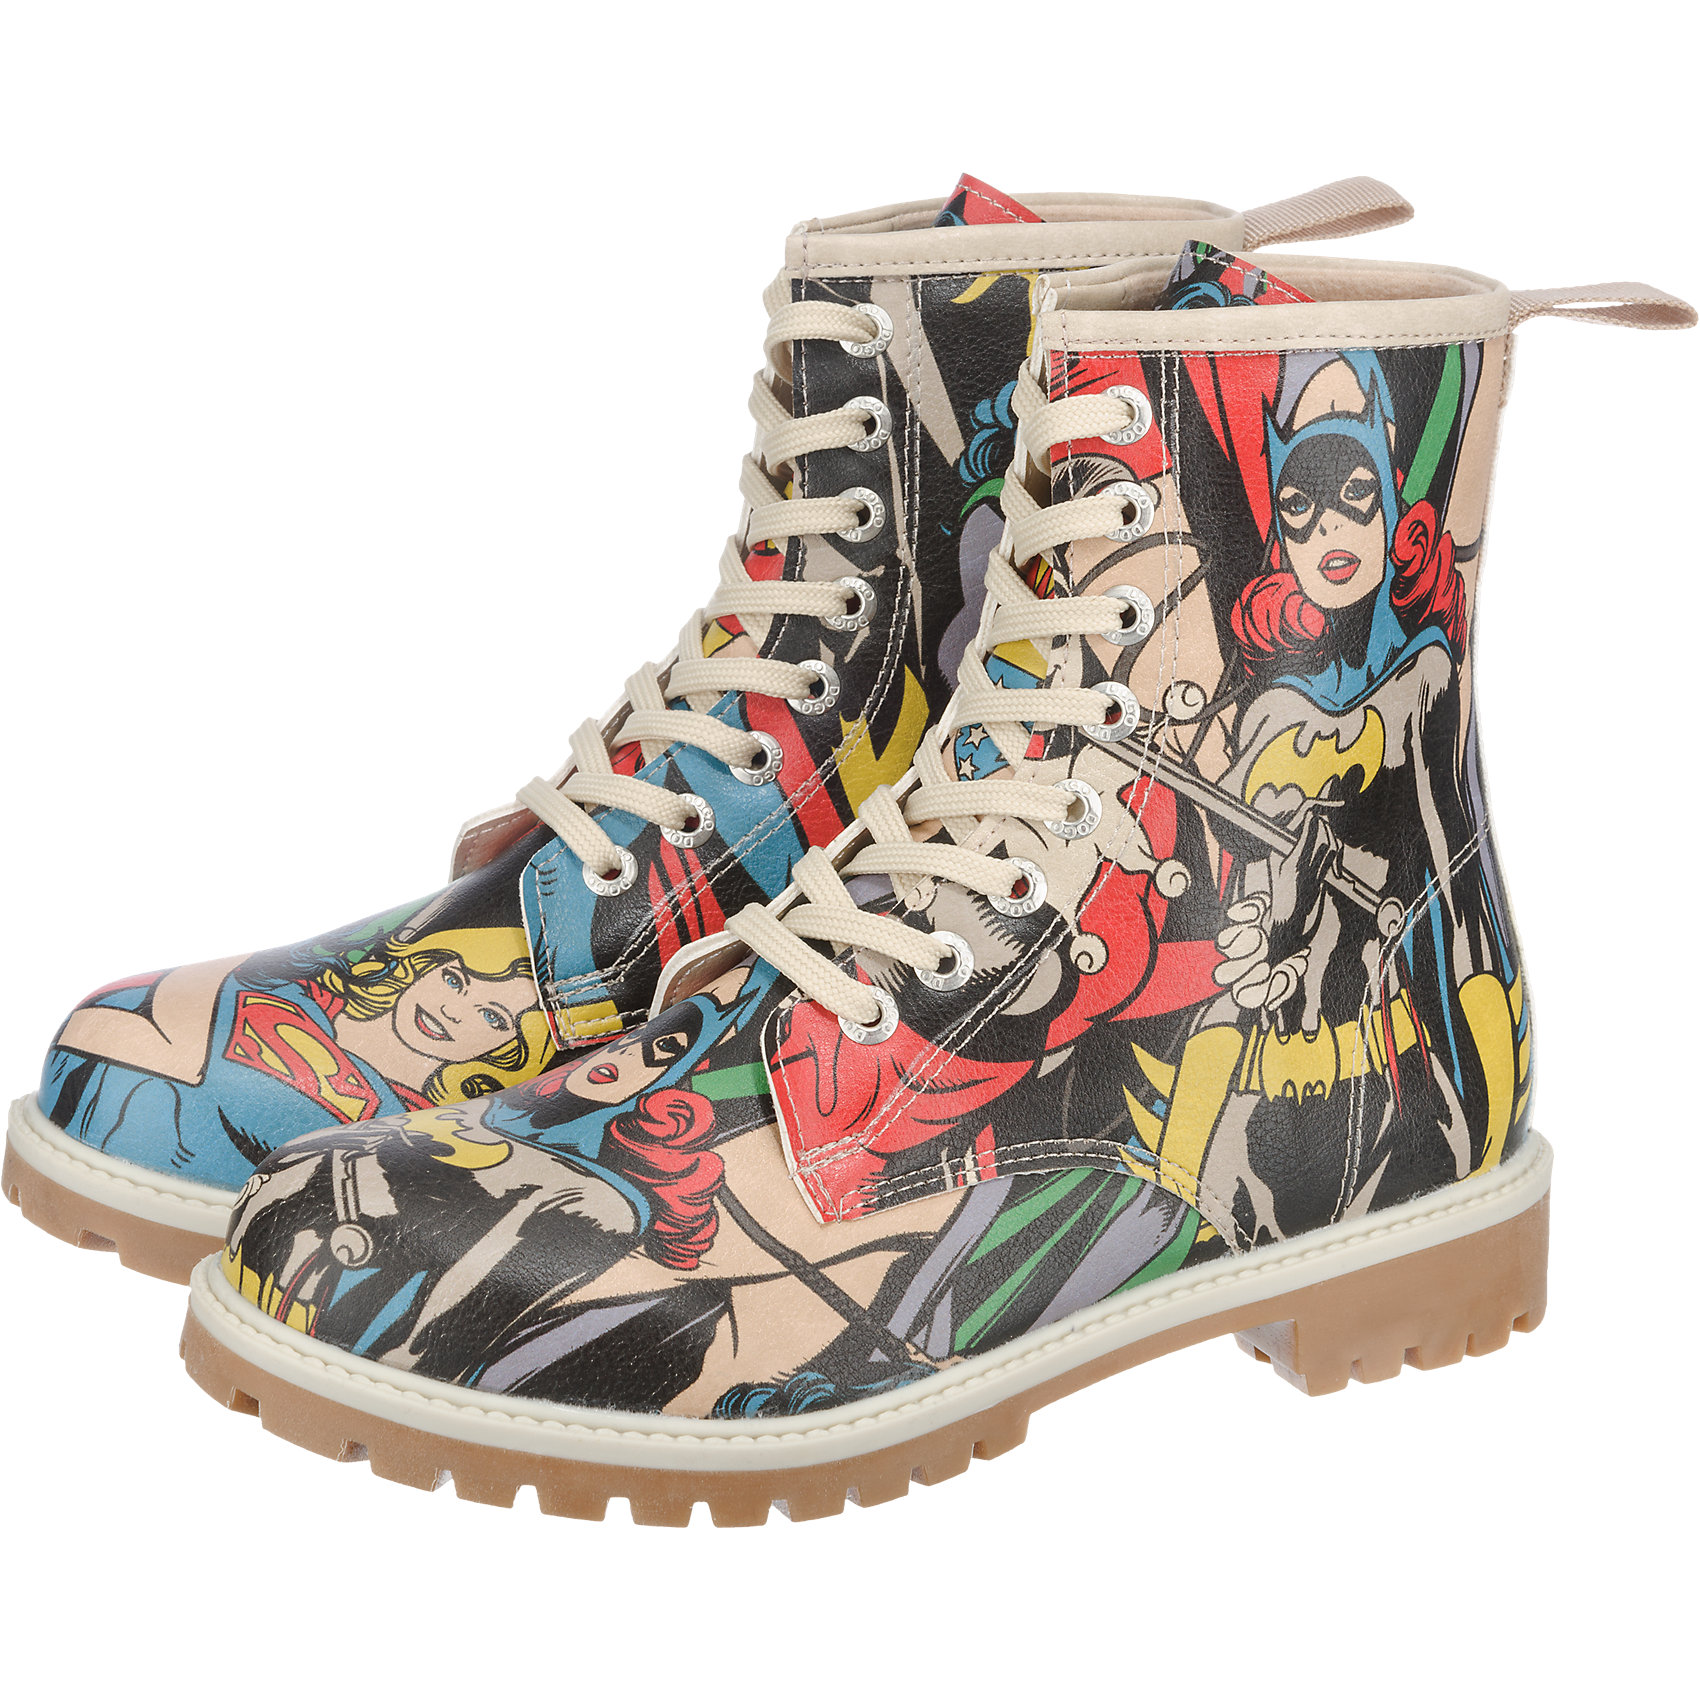 DOGO Boots - Girl's Power 41 WFST5JuB